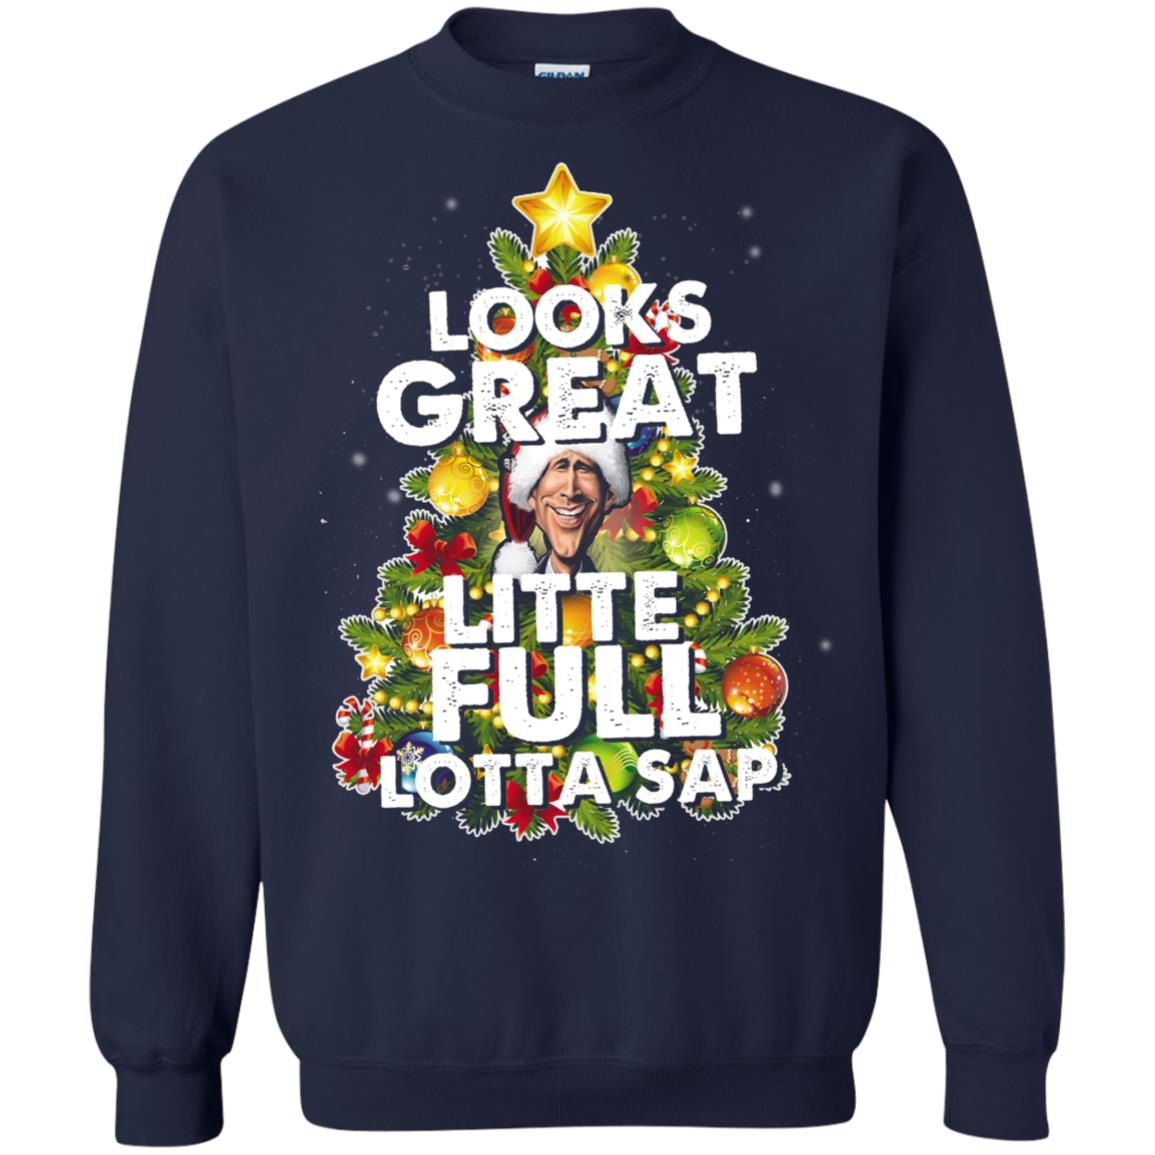 image 2488 - Looks great little full lotta sap ugly Christmas sweater, hoodie